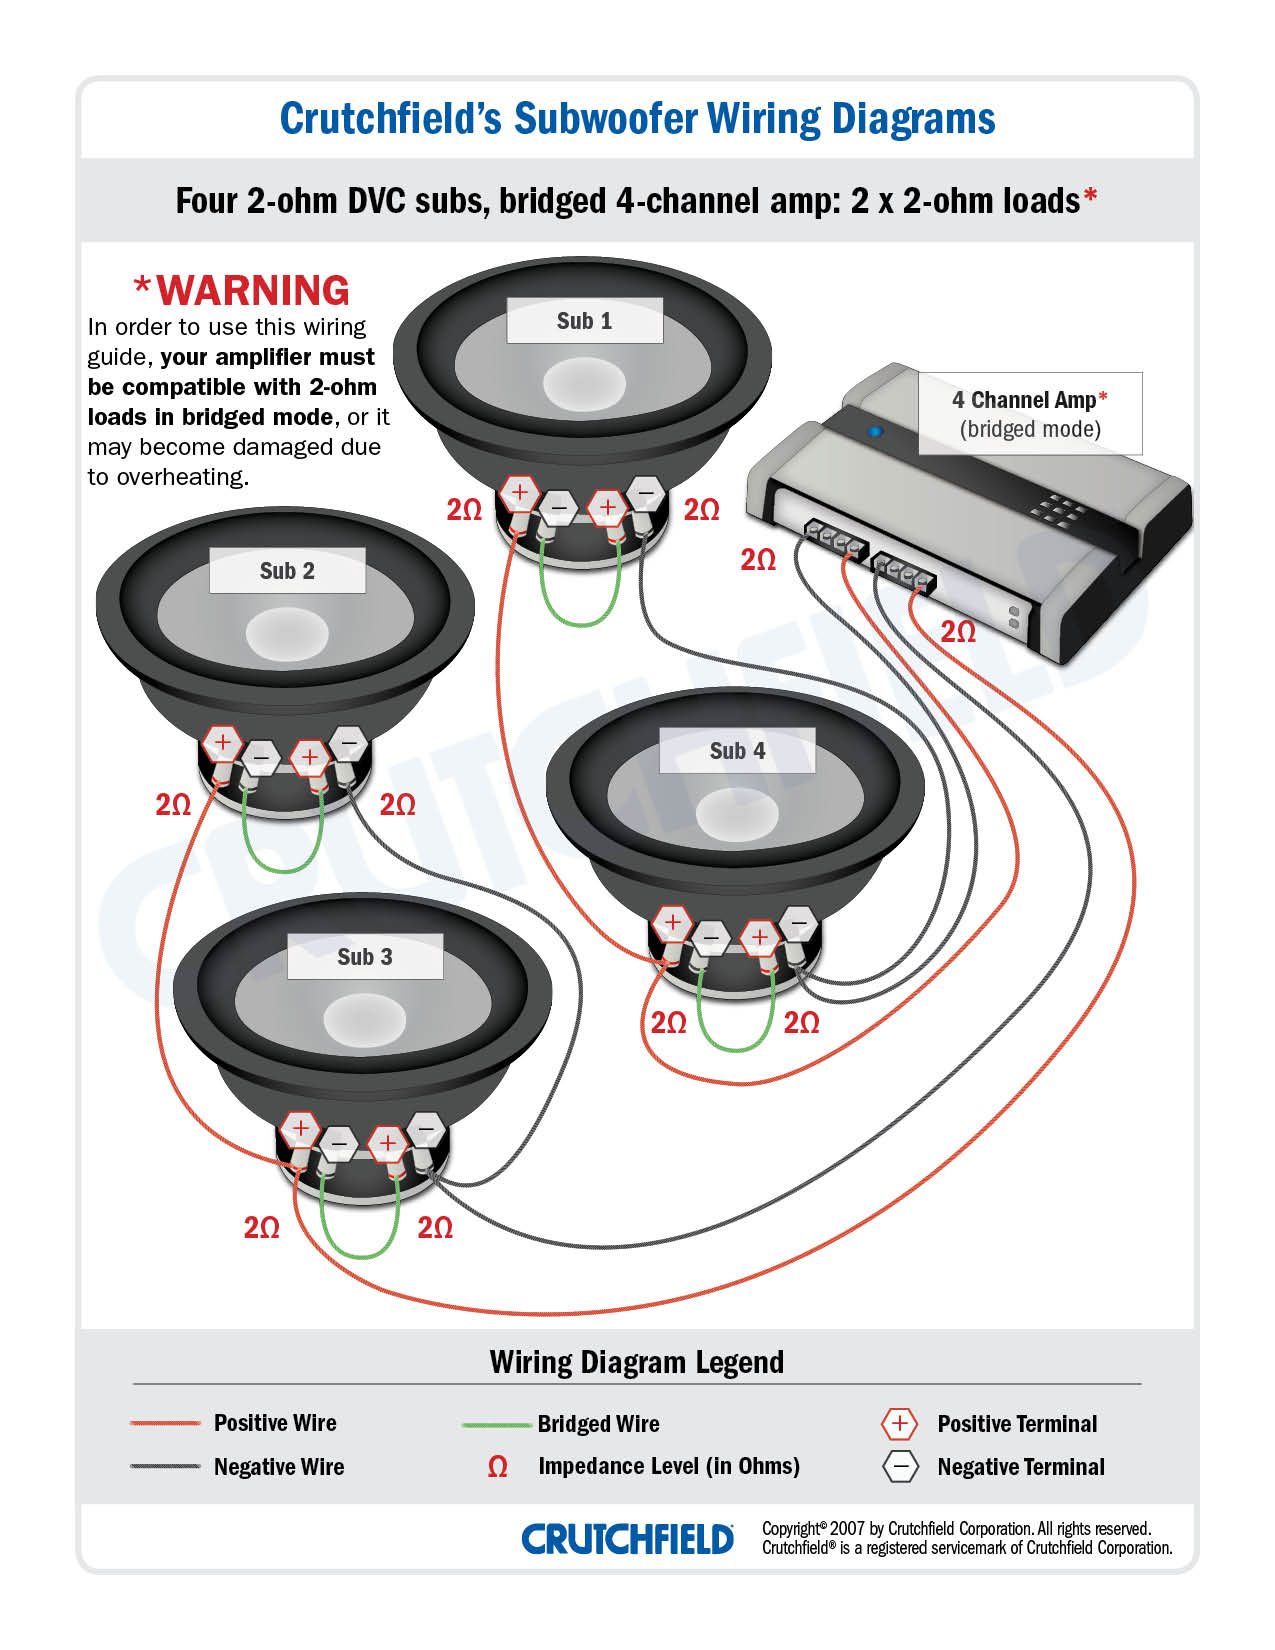 4 DVC 2 ohm 4 ch low imp subwoofer wiring diagrams car stereo system wiring diagram at eliteediting.co